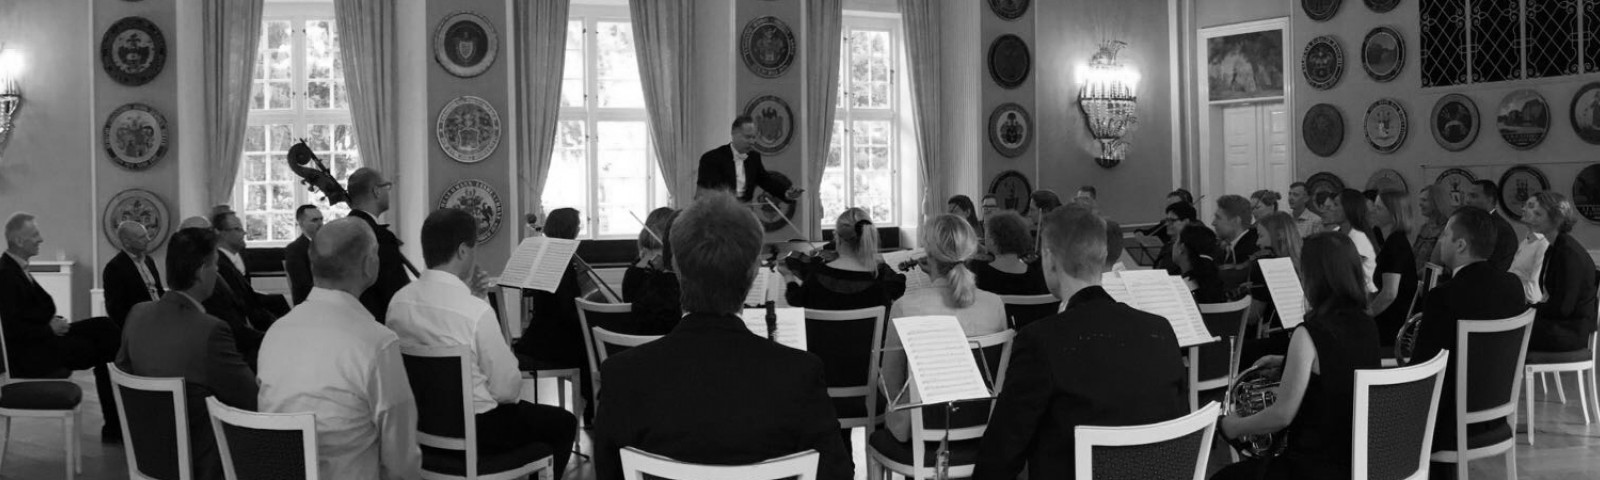 Orchestra Event for Canzona Music